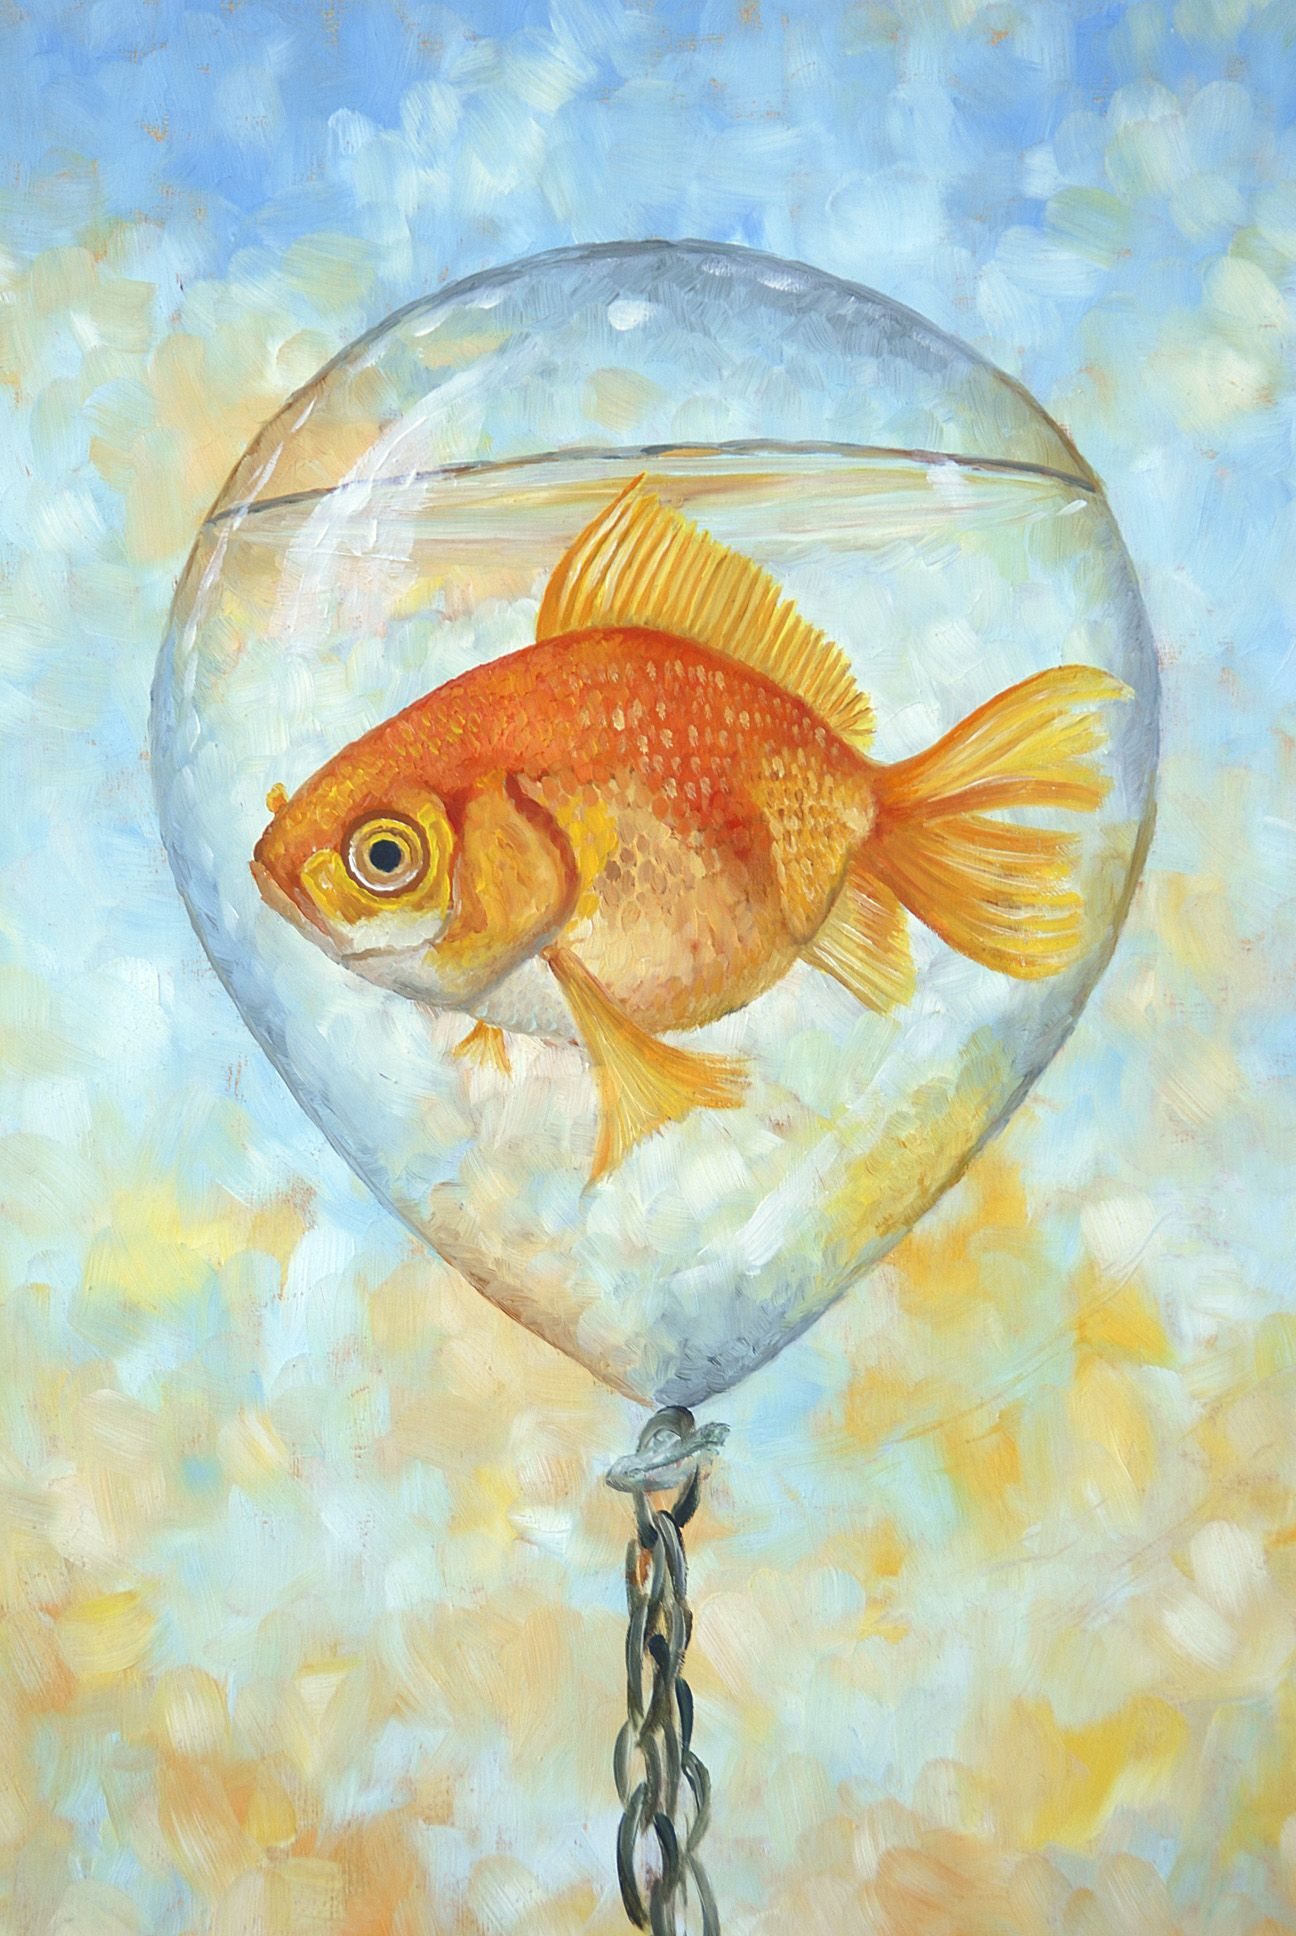 Every Time I Look At This Fish In A Floating Water Balloon I Think To Myself Did I Really Paint That Surealism Art Rock Painting Art Fish Art